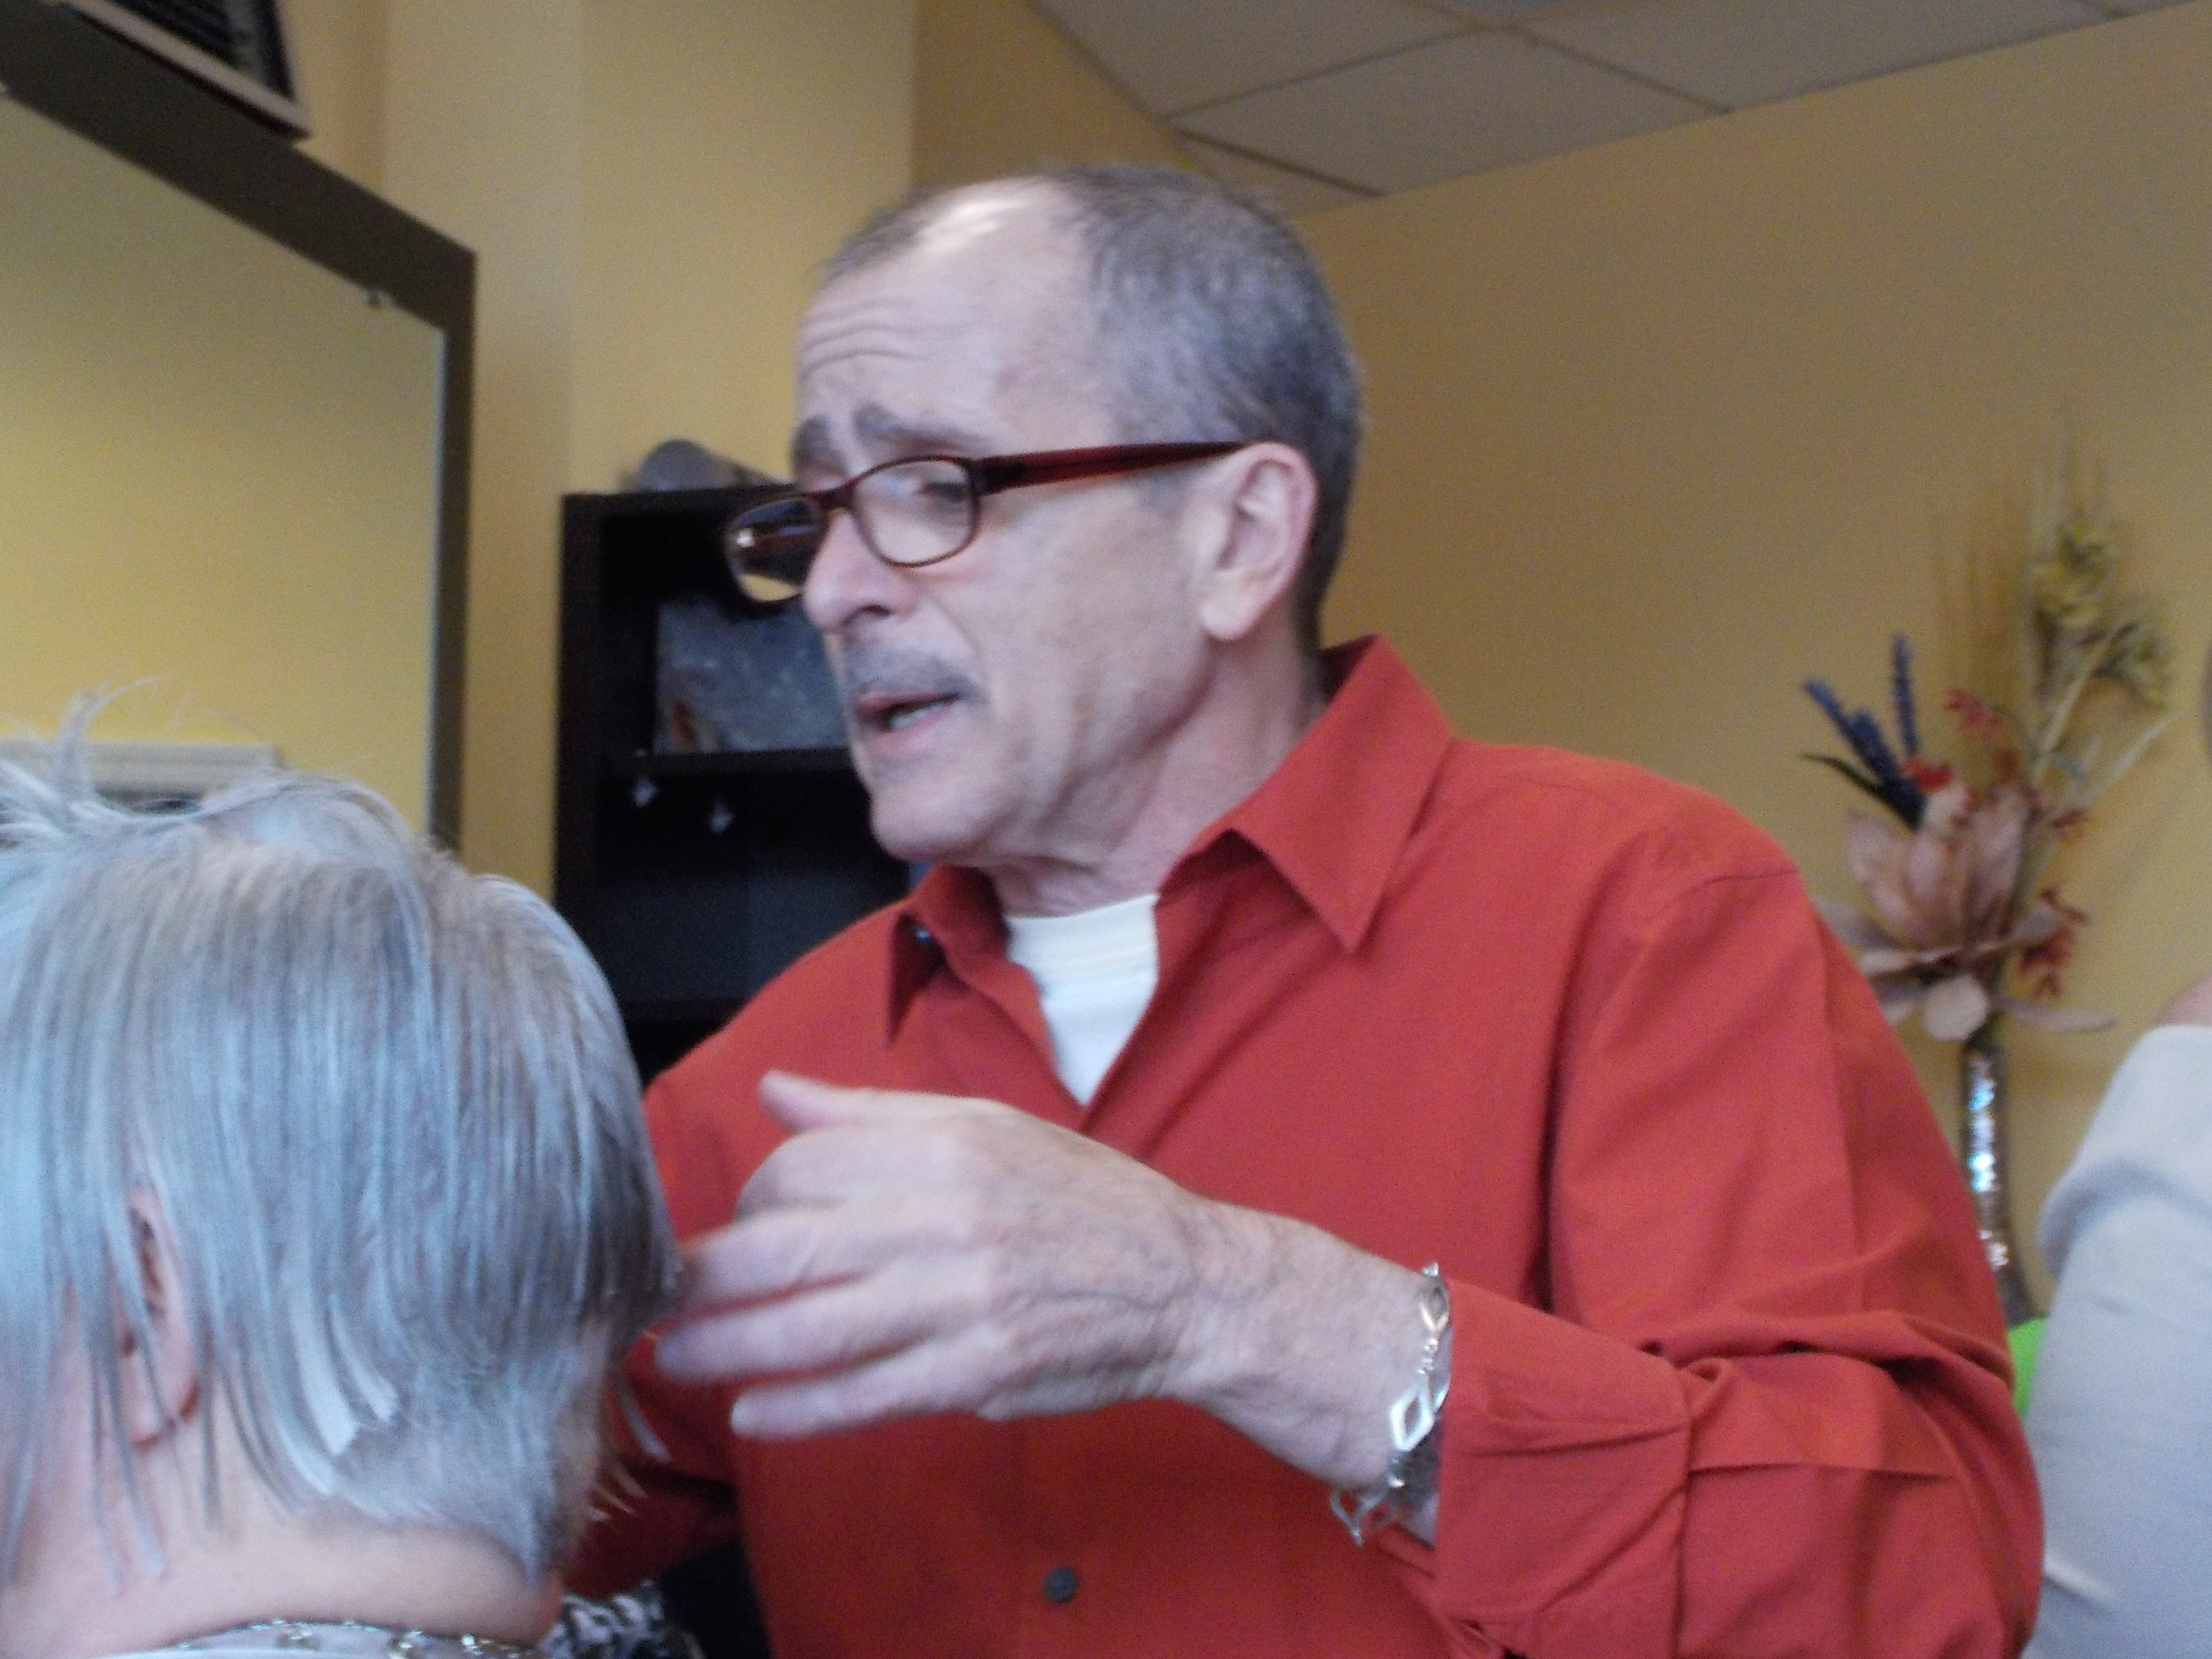 Tony Sarica has cut hair for 46 years, 43 of them in Lynbrook.